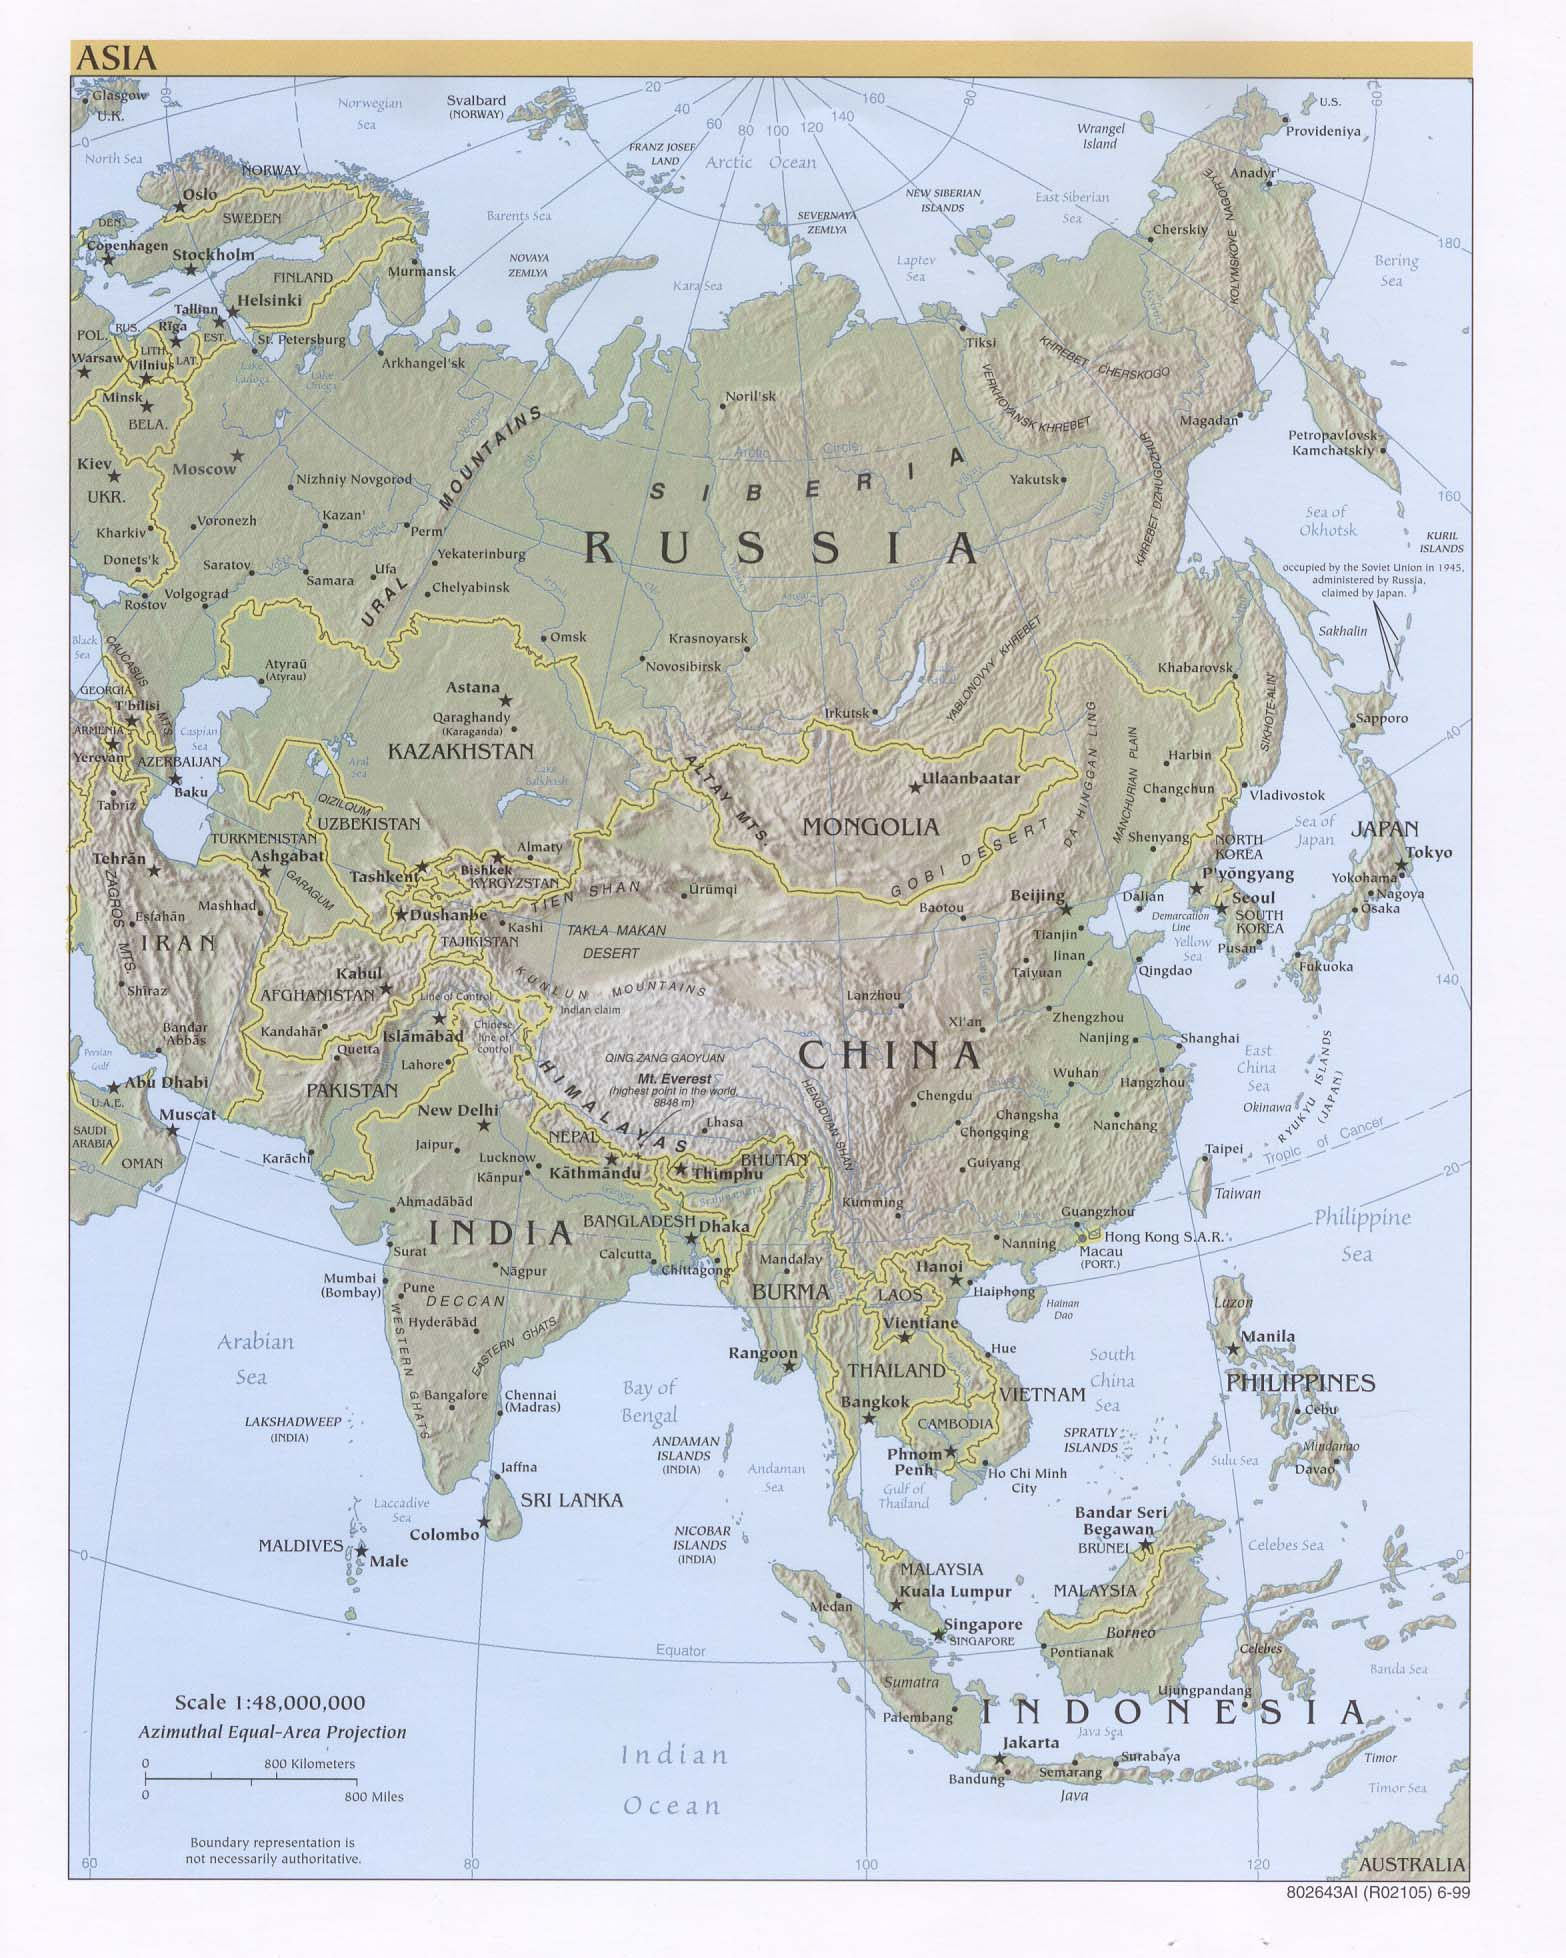 East Asia Physical Features Map